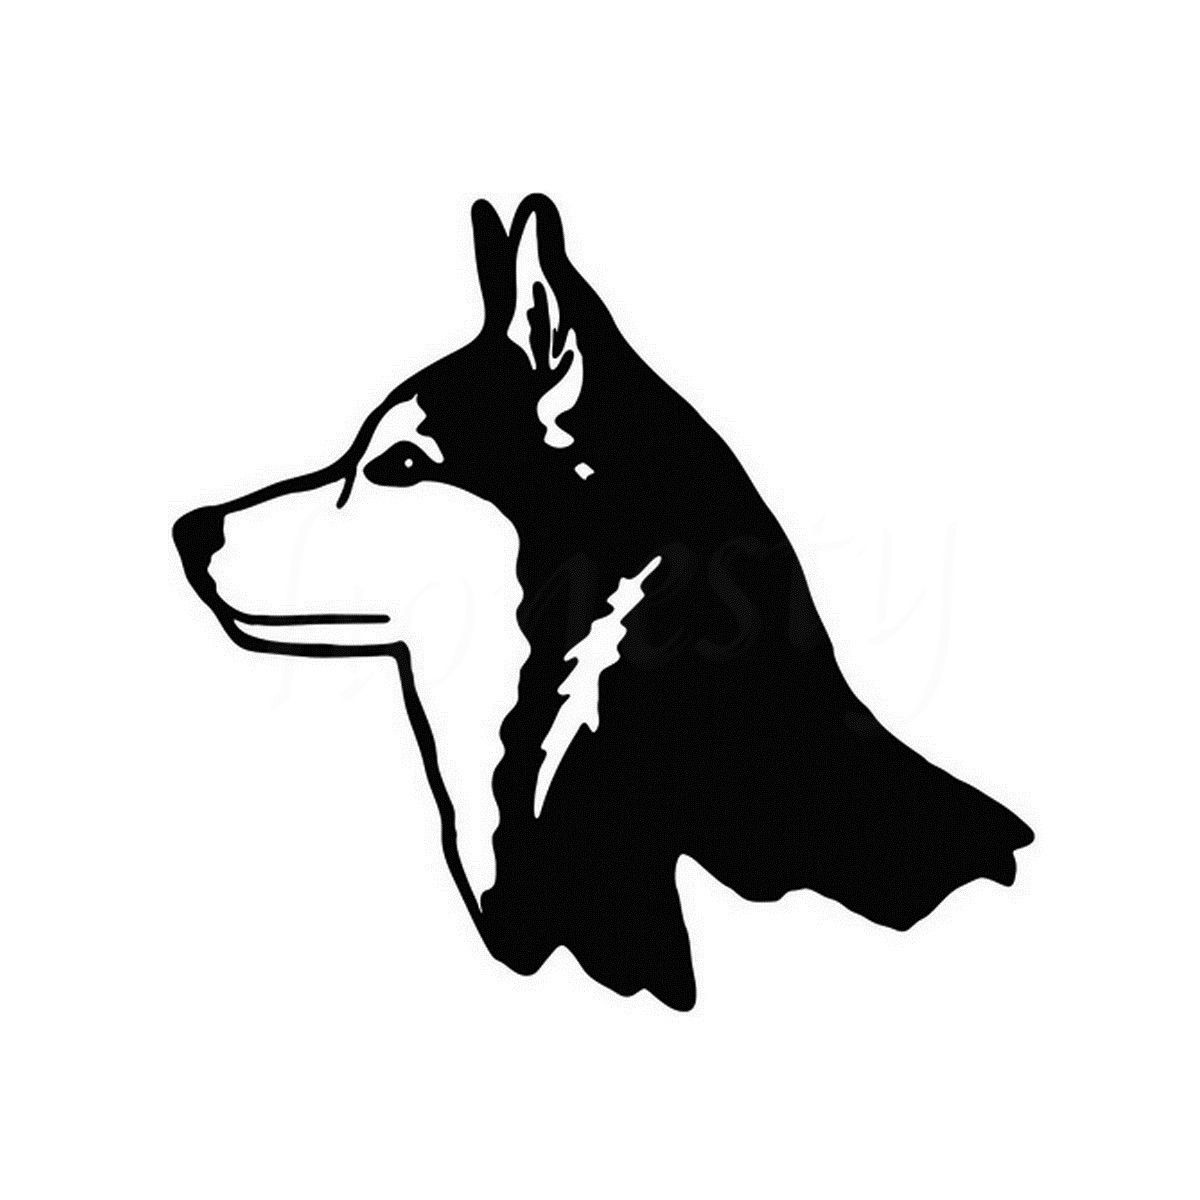 Wolves At The Gate Sticker Decal bumper car truck window wall laptop USA Jesus